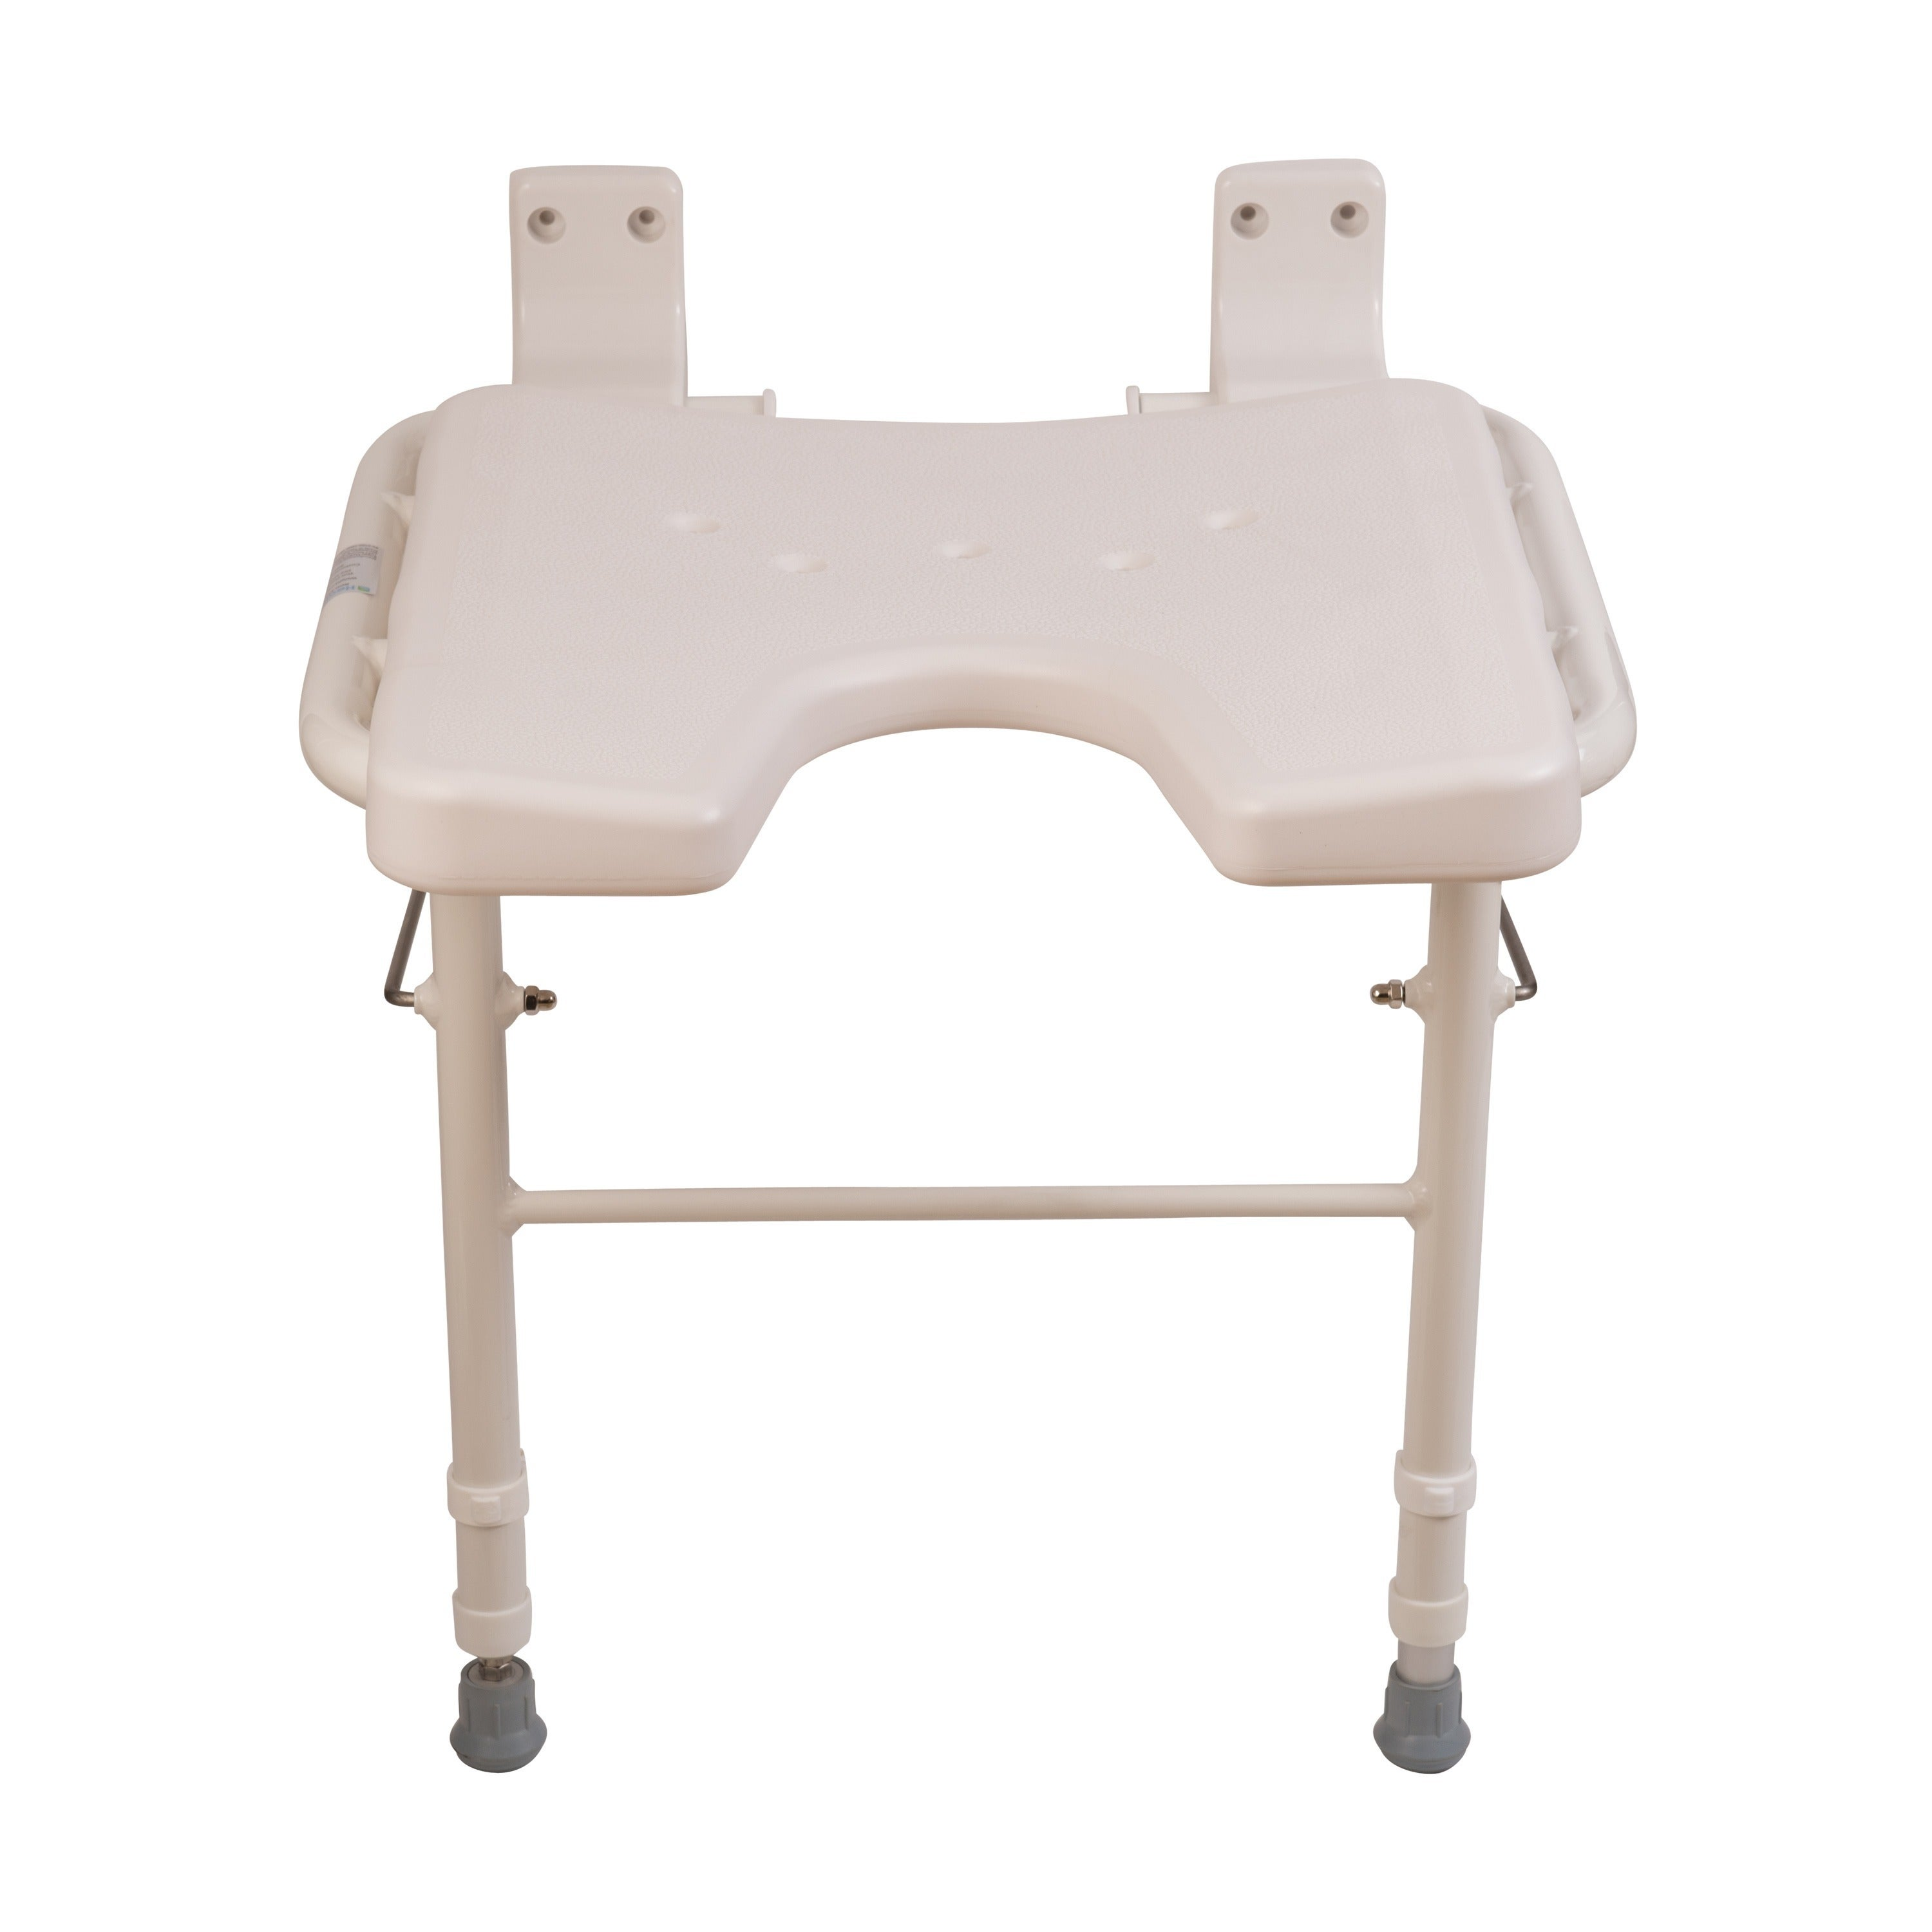 Shop HealthSmart White Wall Mount Fold Away Bath Chair Shower Seat ...